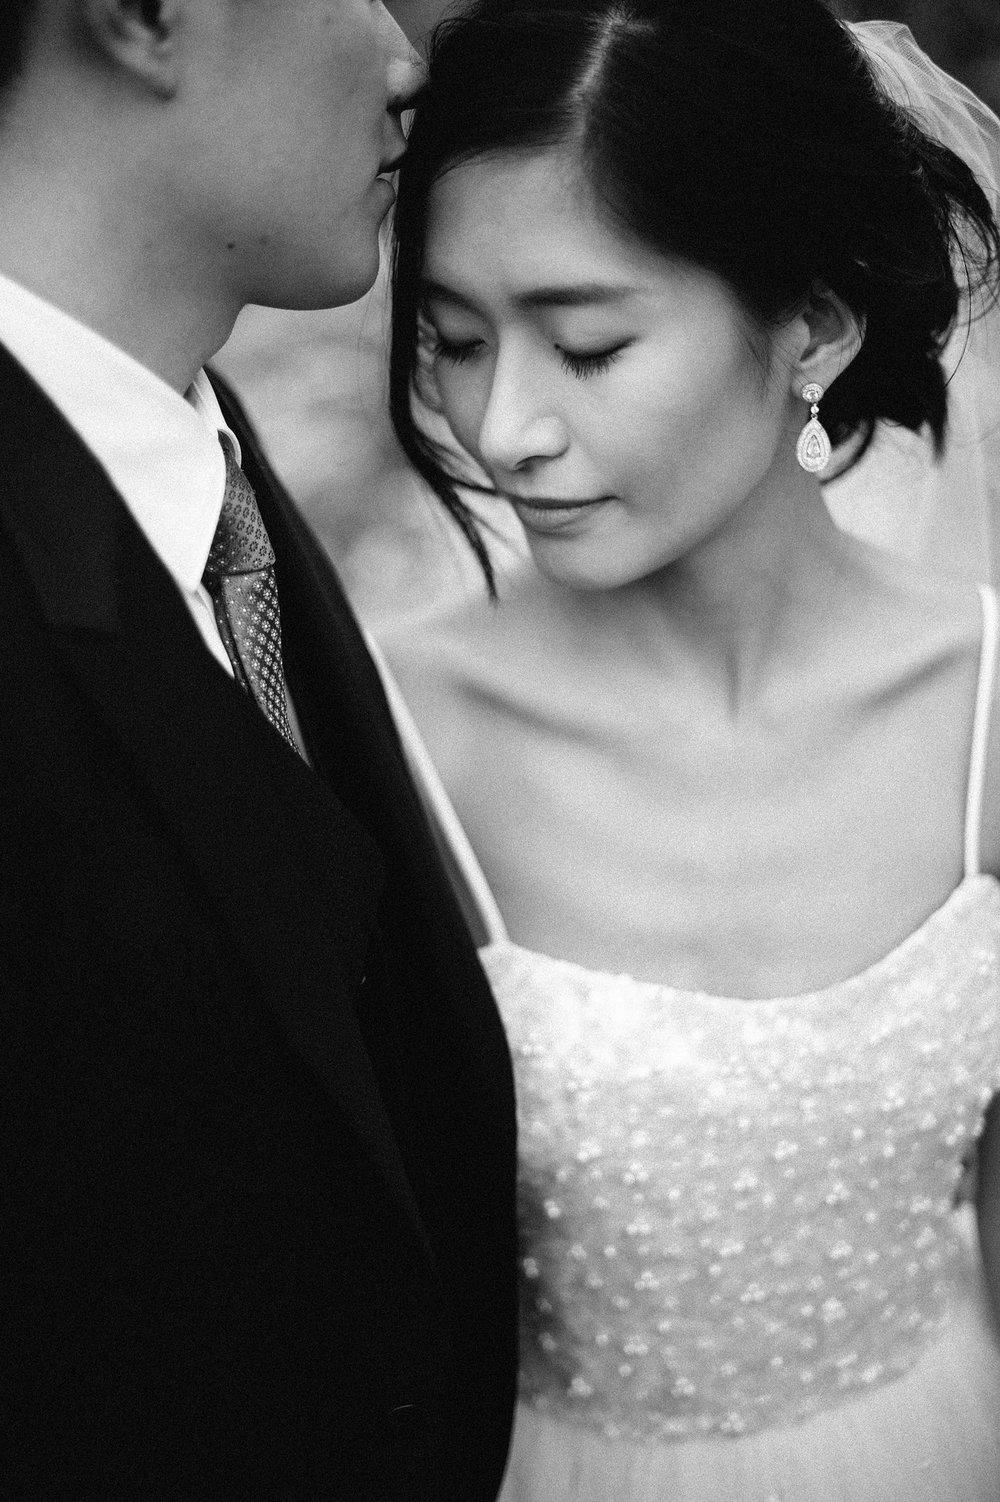 Chris_Hui_婚禮_婚紗照_pre_wedding_photography_best_053_.jpg